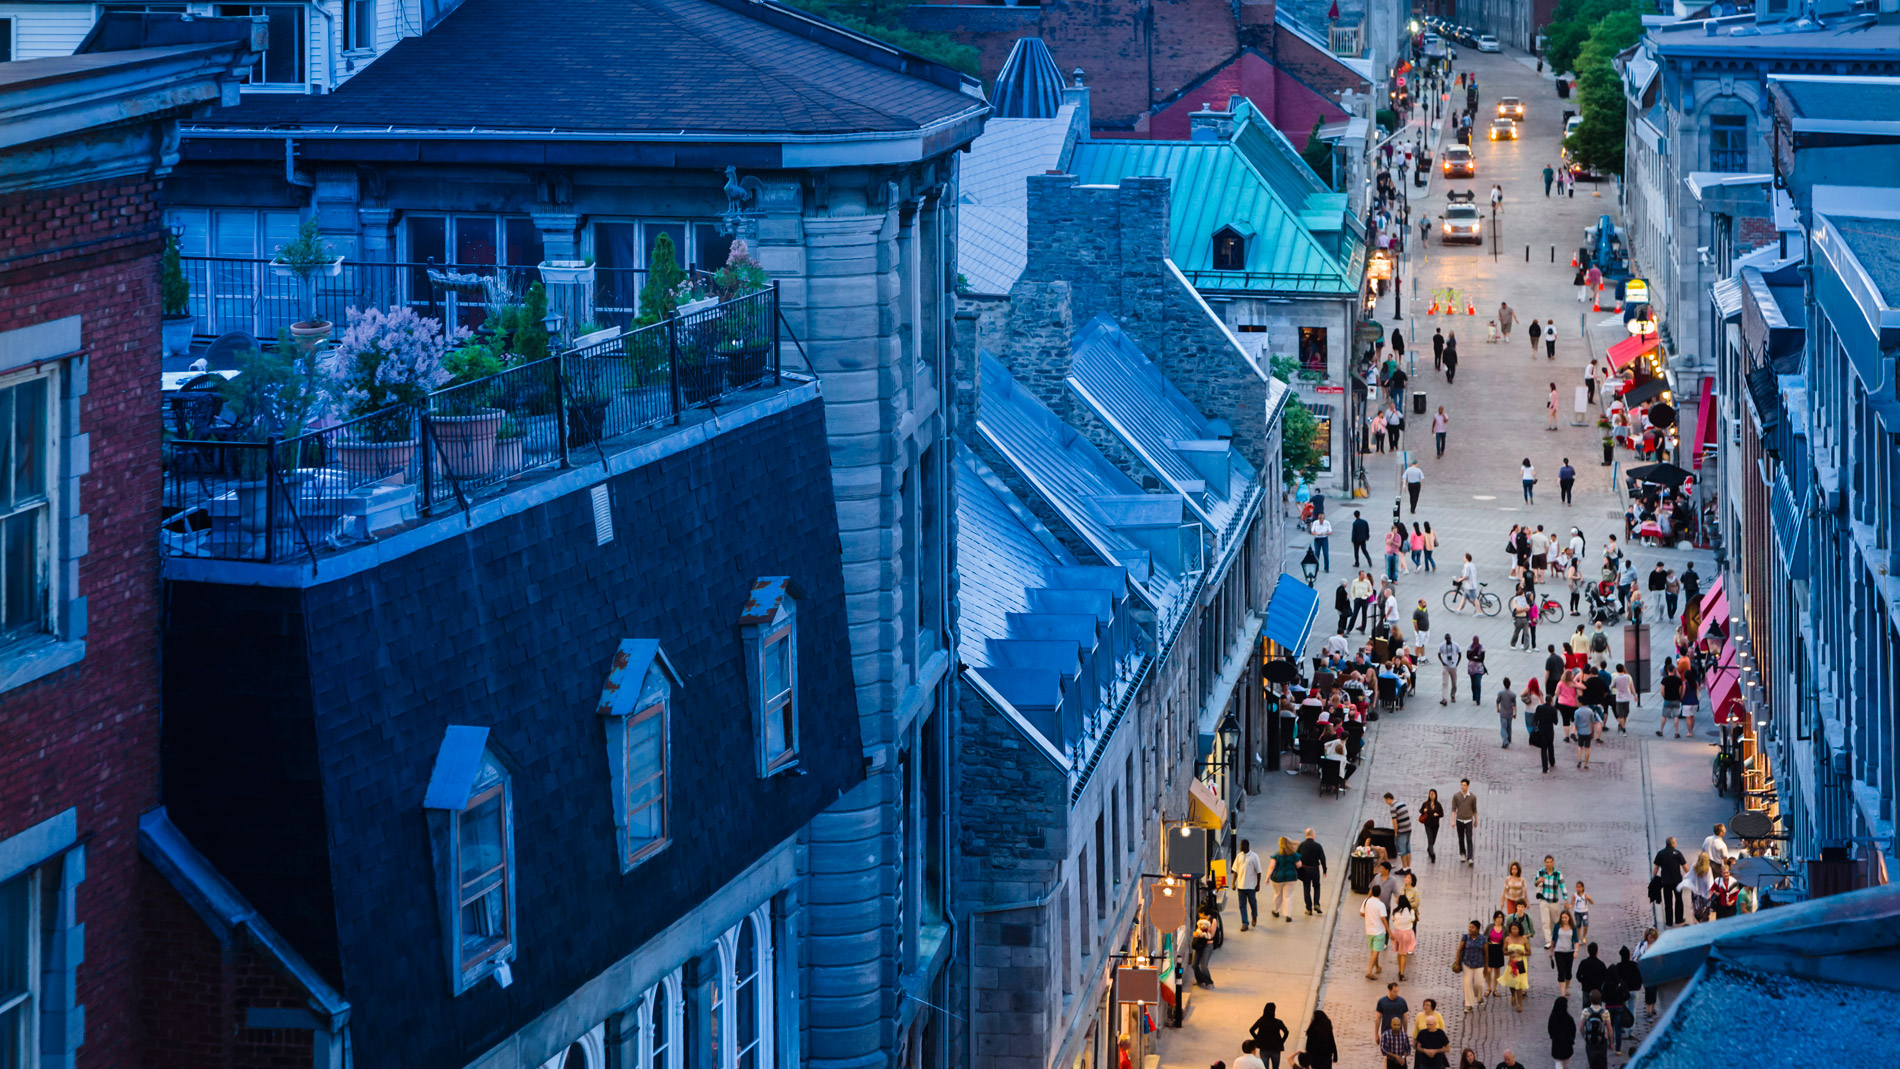 Where to Eat In Old Montreal